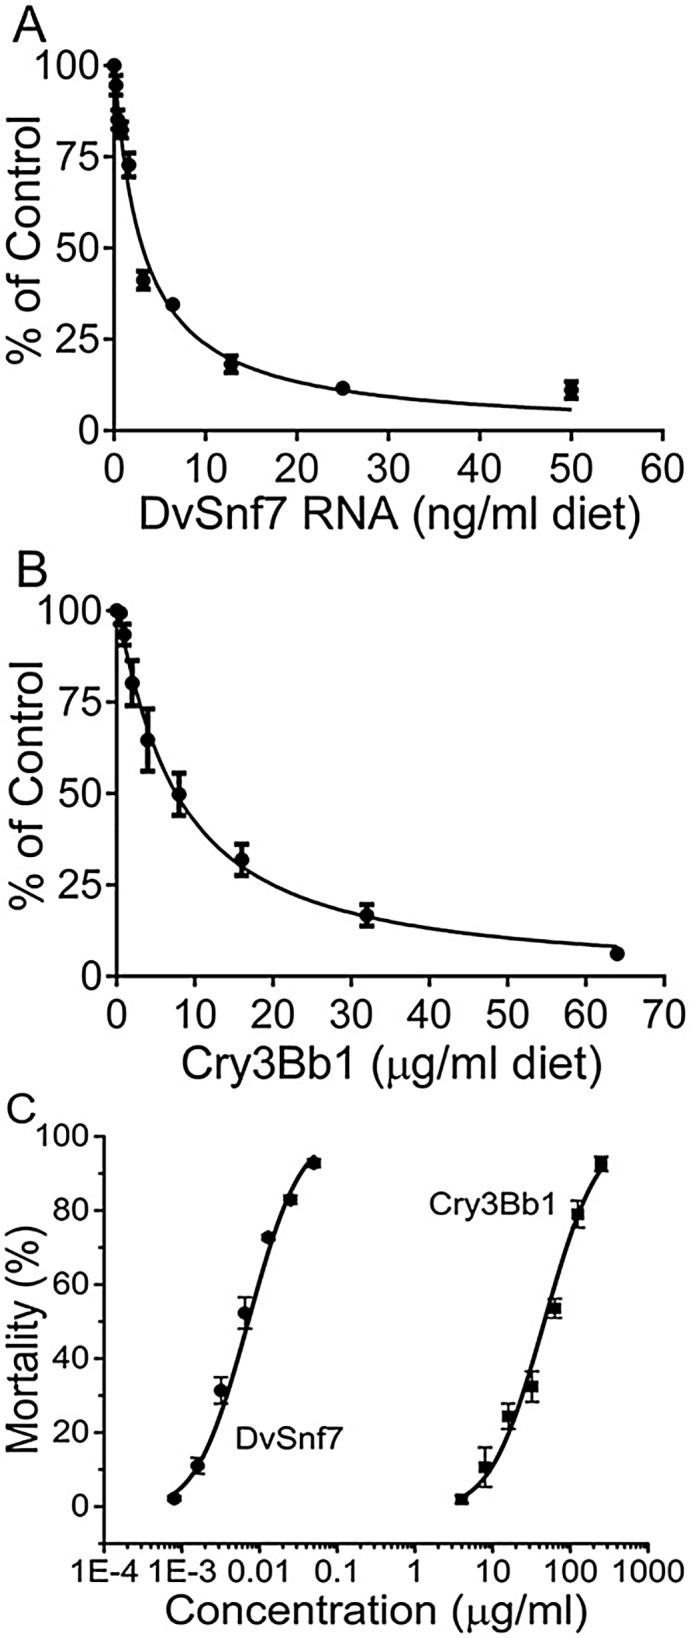 Concentration response curves for growth inhibition activity of DvSnf7 (A) and Cry3Bb1 (B) and for mortality of DvSnf7 and Cry3Bb1 (C) to SCR in 12-day diet incorporation bioassays. Data points represent mean values with standard errors of six replicated bioassays for growth inhibition curves (A and B) and of five replicated bioassays for mortality curves (C). The concentration-mortality response curves were plotted with log transformation of concentrations (X-abscissa) plotted against the percent mortality (Y-abscissa).